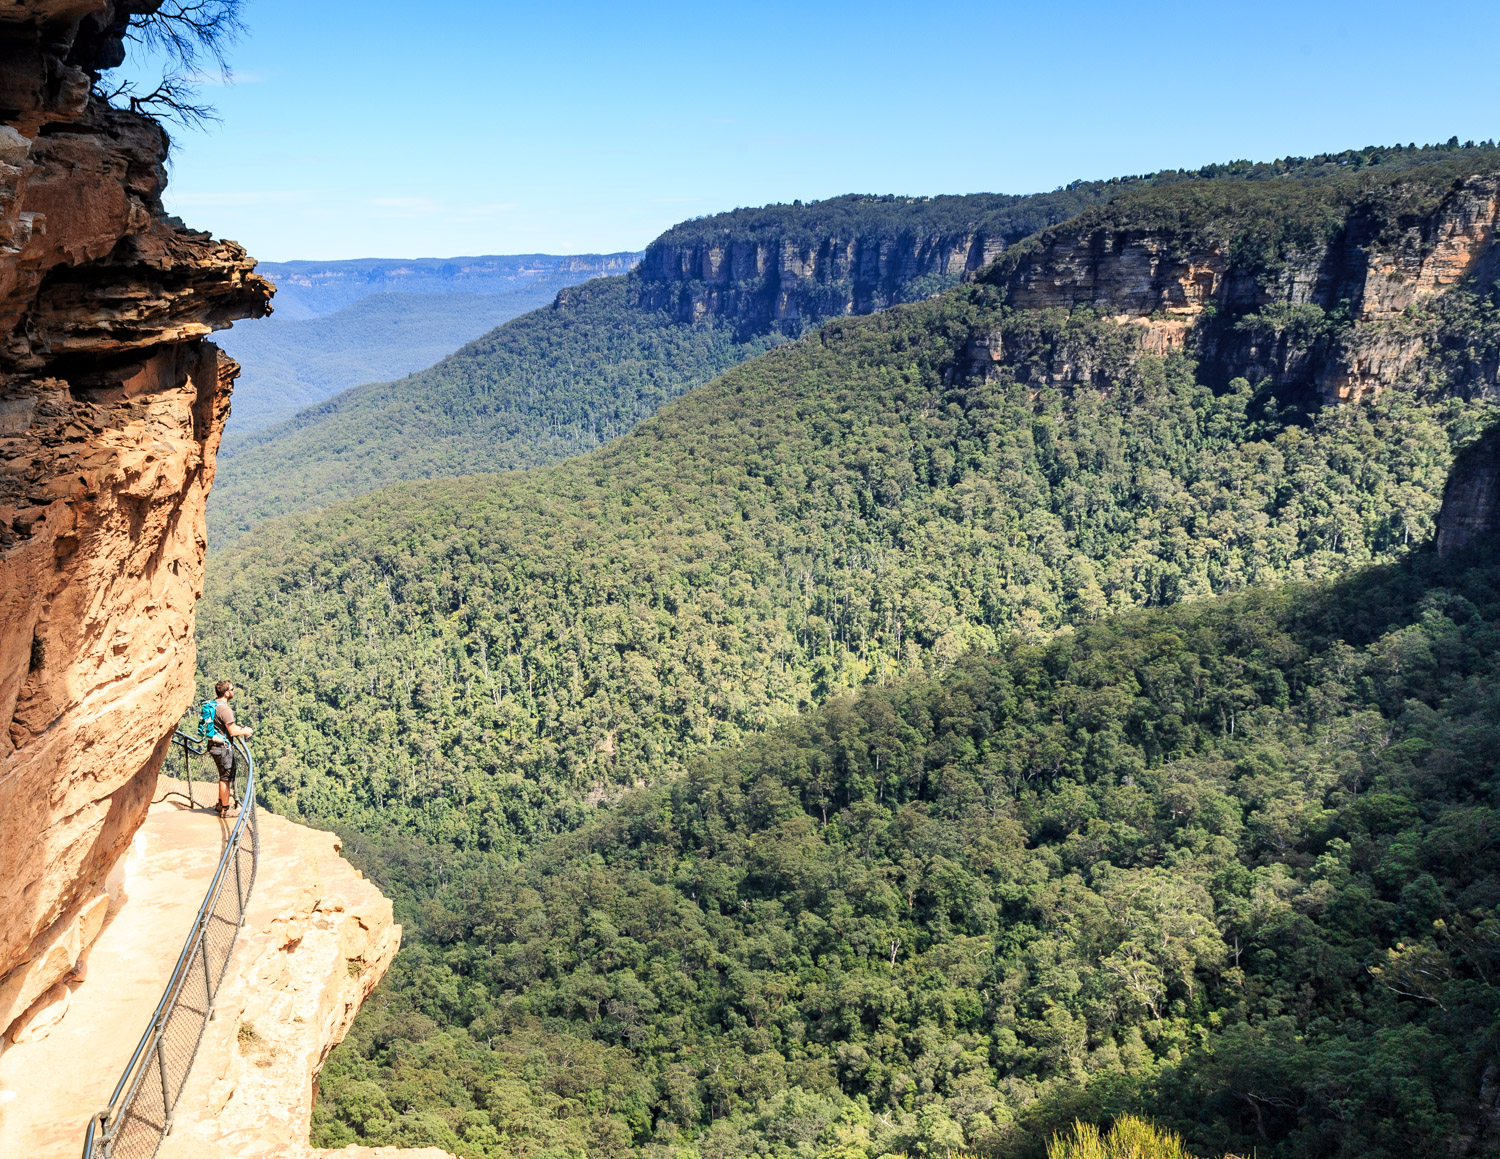 Day trip to Wentworth Falls - National Pass